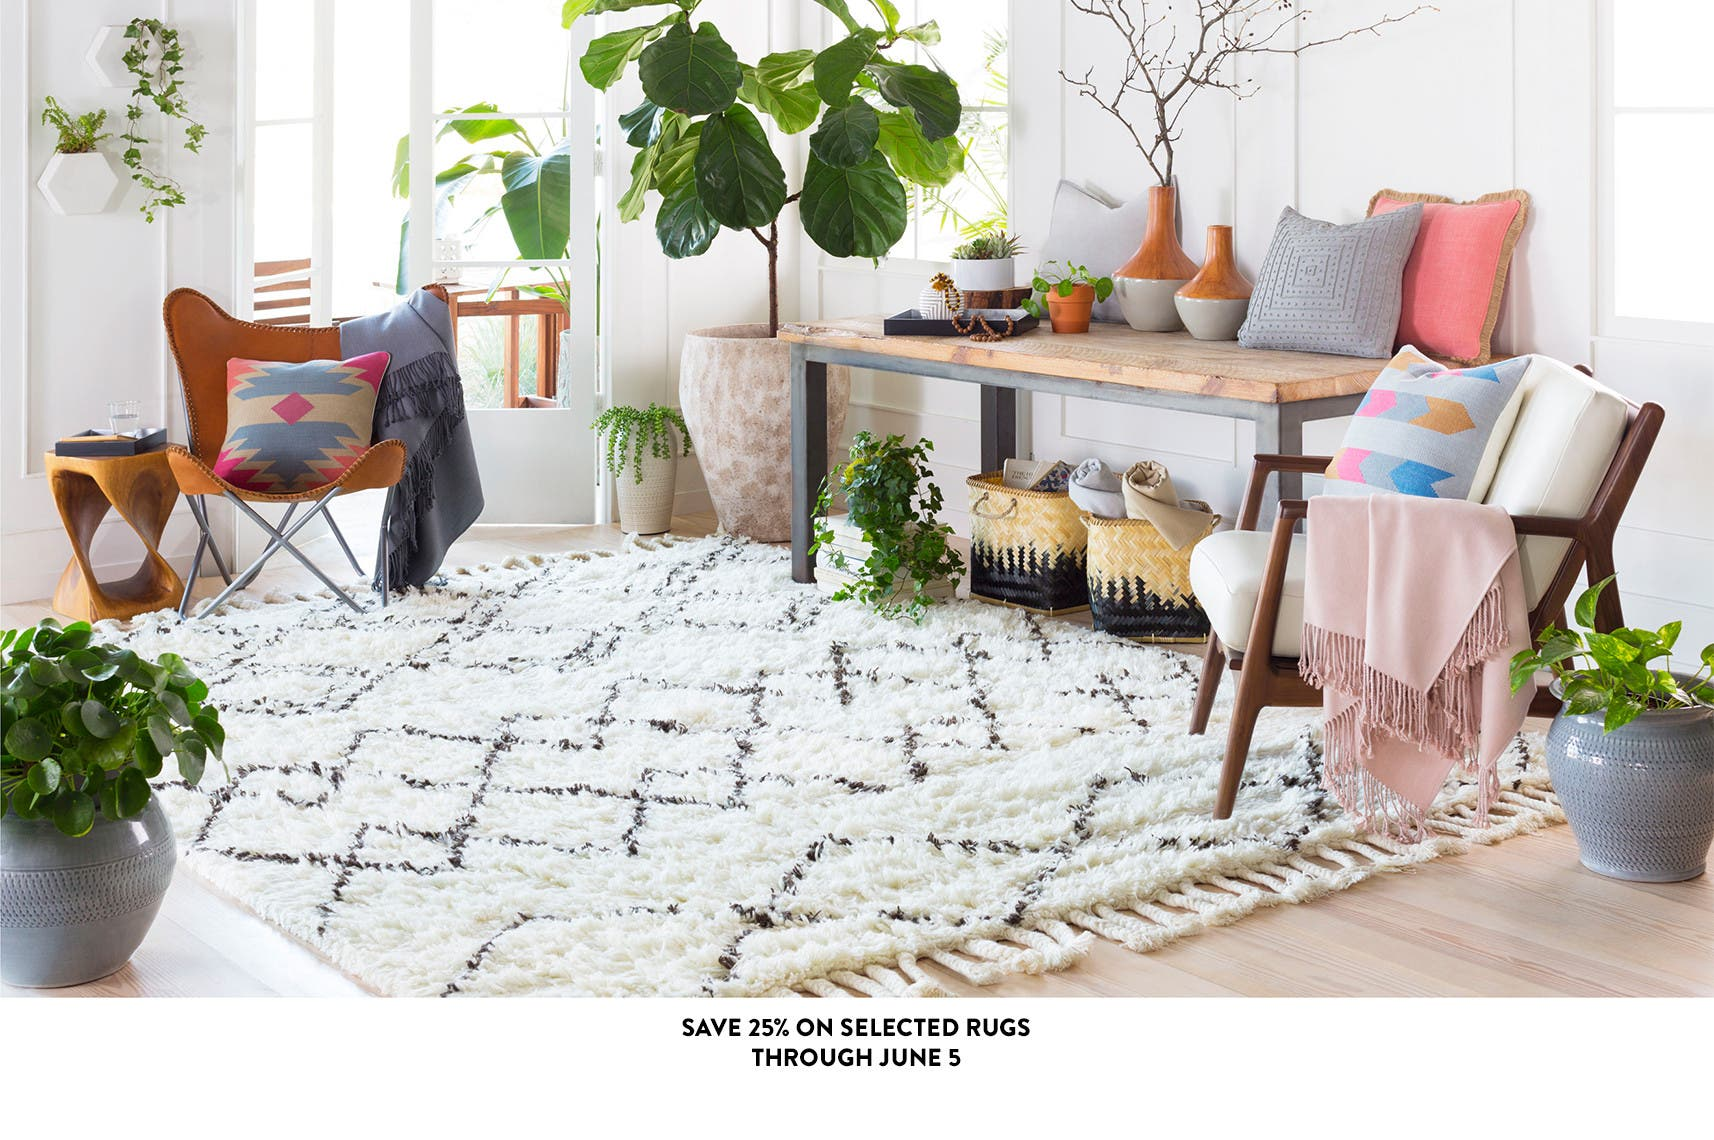 Save 25% on selected rugs through June 5th.